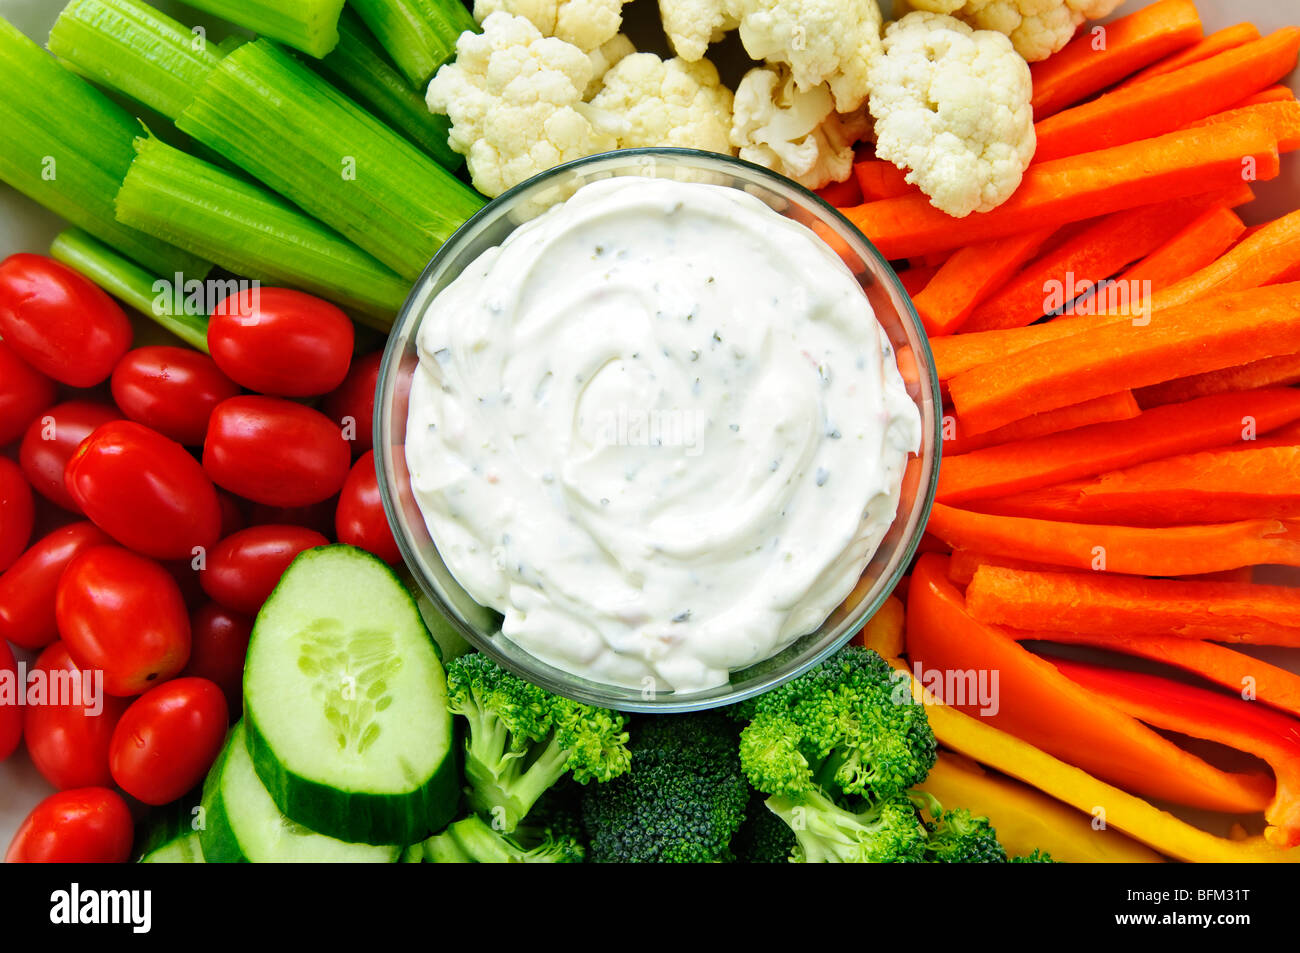 Platter of assorted fresh vegetables with dip - Stock Image